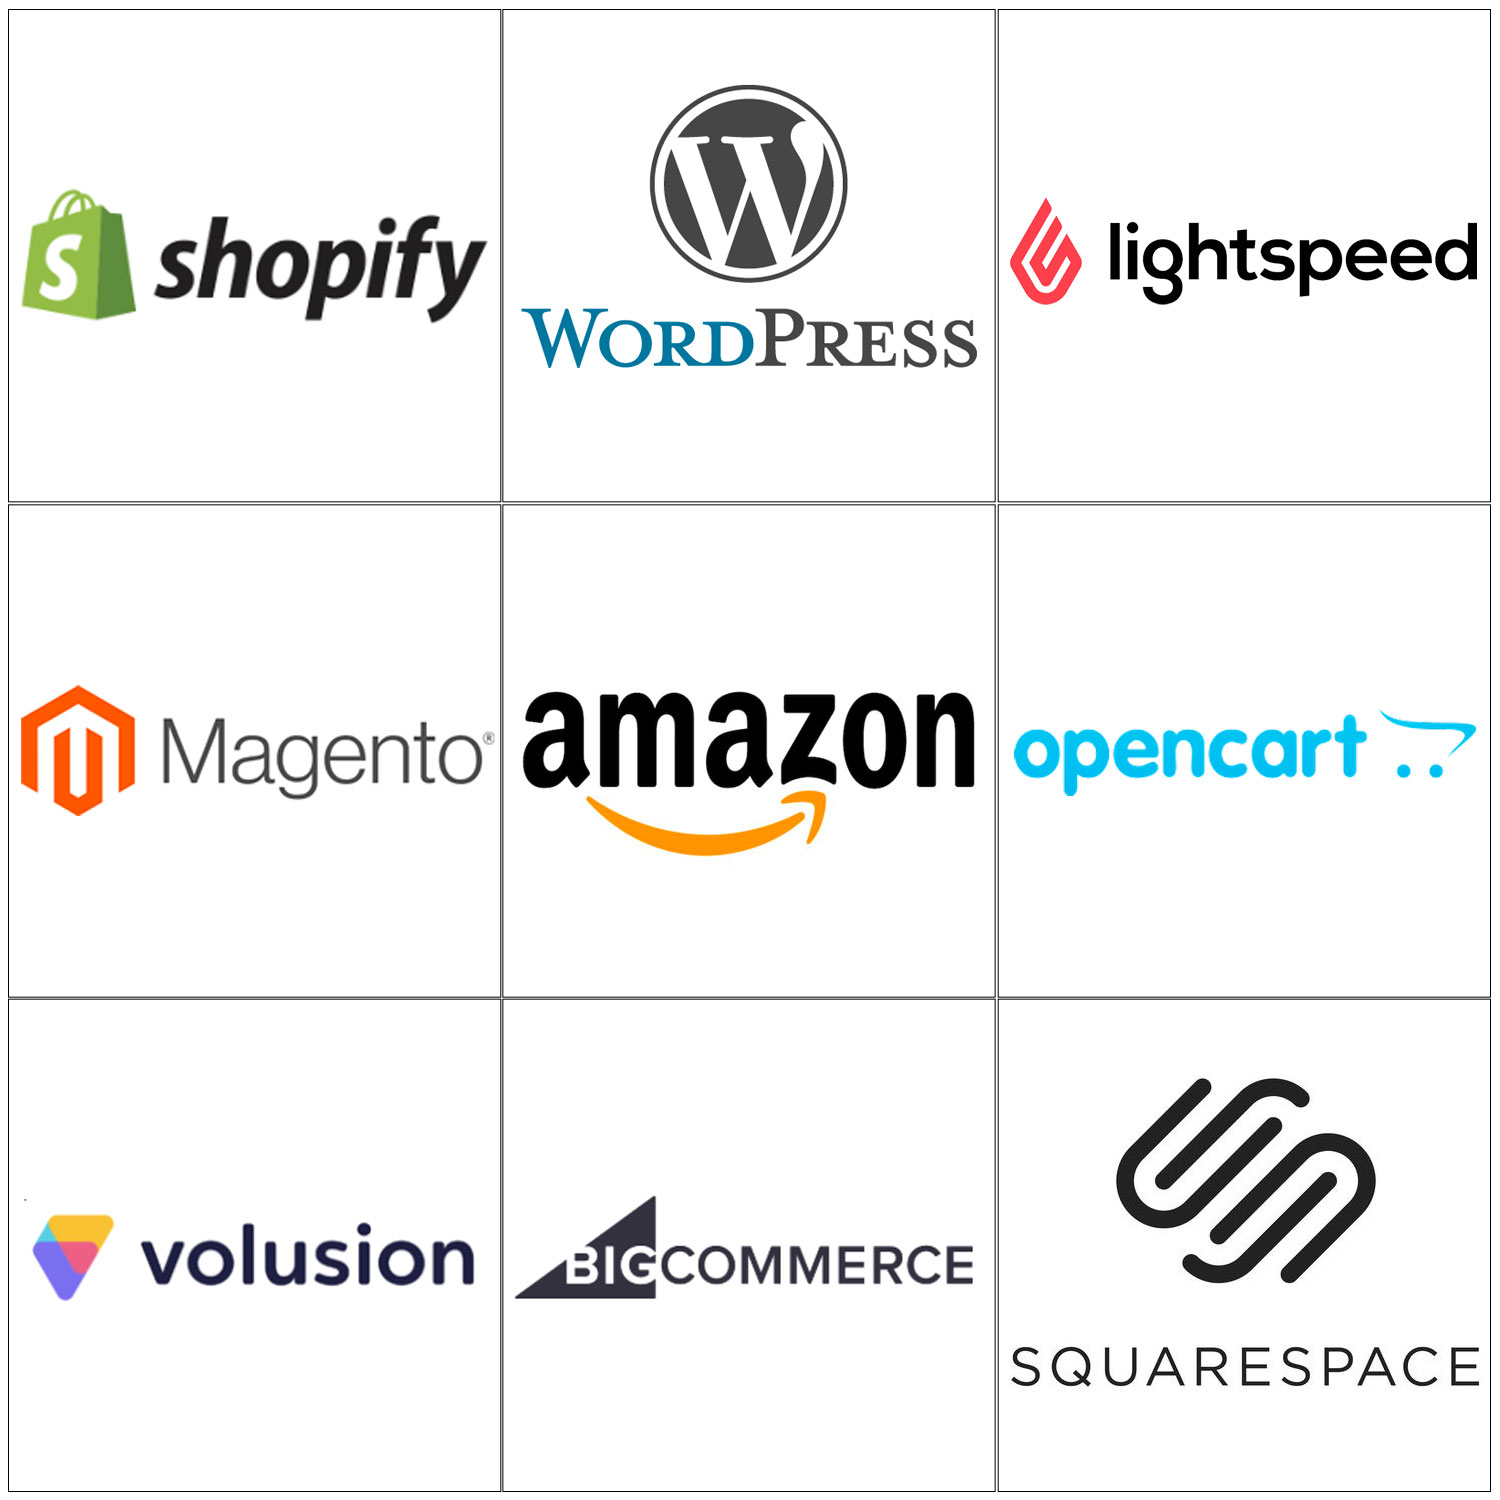 Wordpress Volusion Opencart Magento bigcommerce Squarespace Shopify Amazon Lightspeed